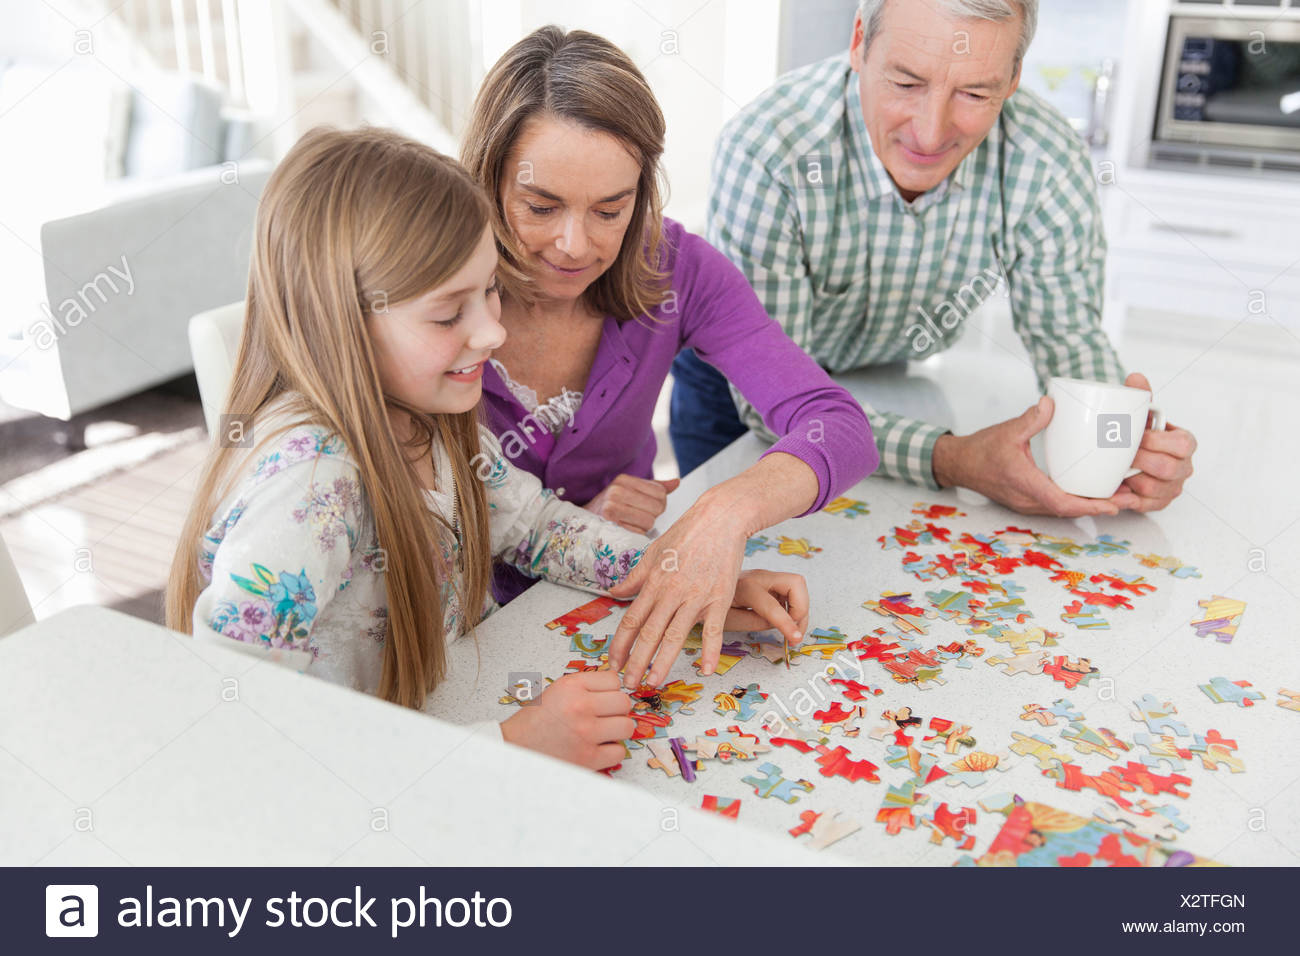 Granddaughter doing jigsaw puzzle with grandparents in kitchen - Stock Image